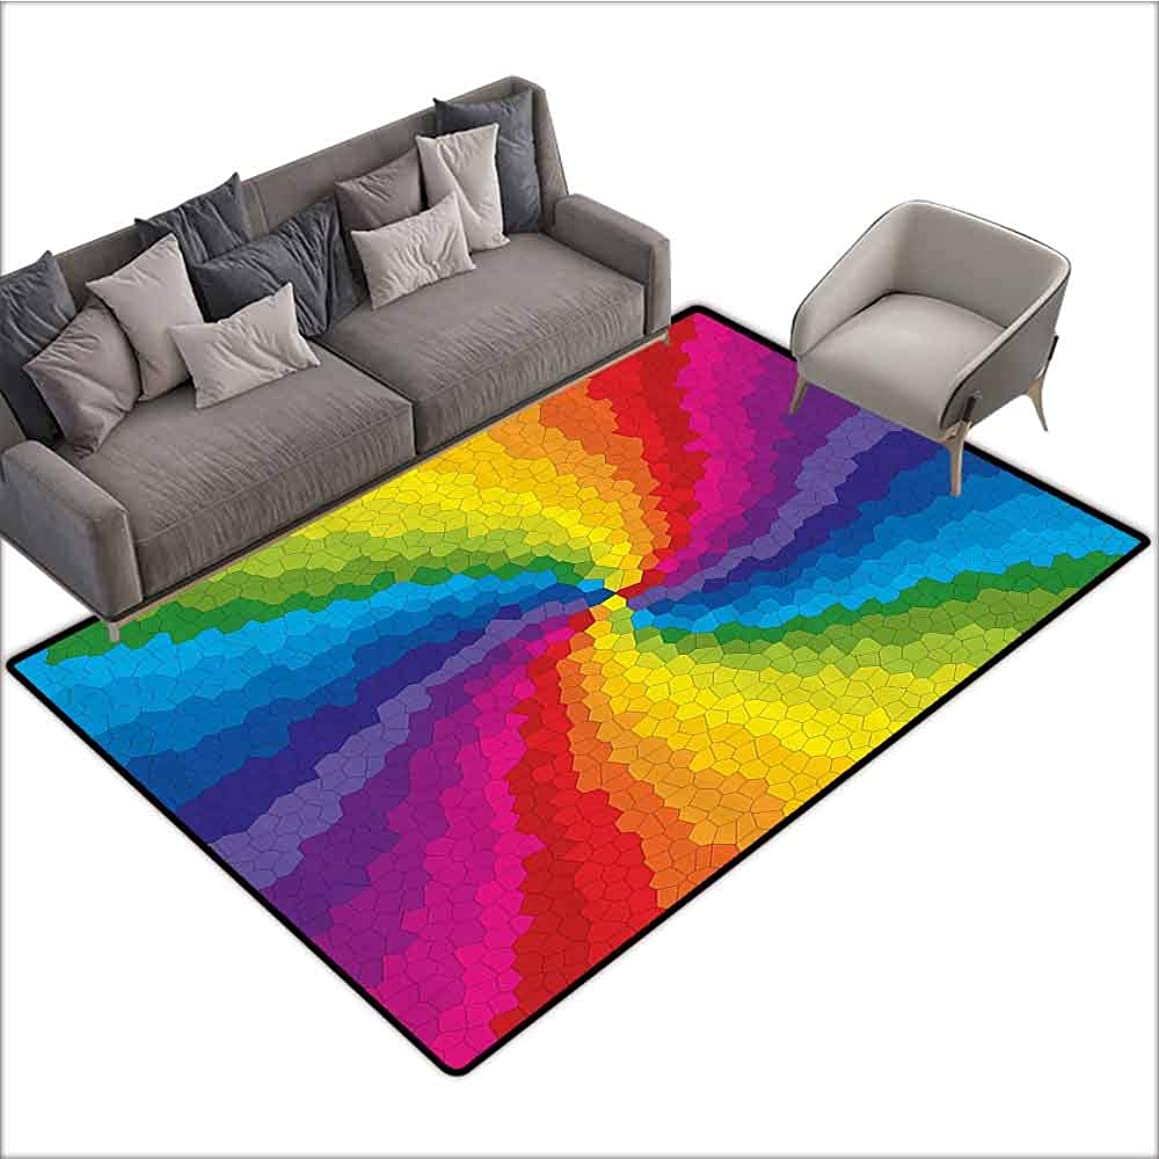 Office Chair Floor Mat Foot Pad Colorful,Stained Glass Design in Rainbow Colors Burst Effect Abstract Mosaic Swirls Artwork,Multicolor 60